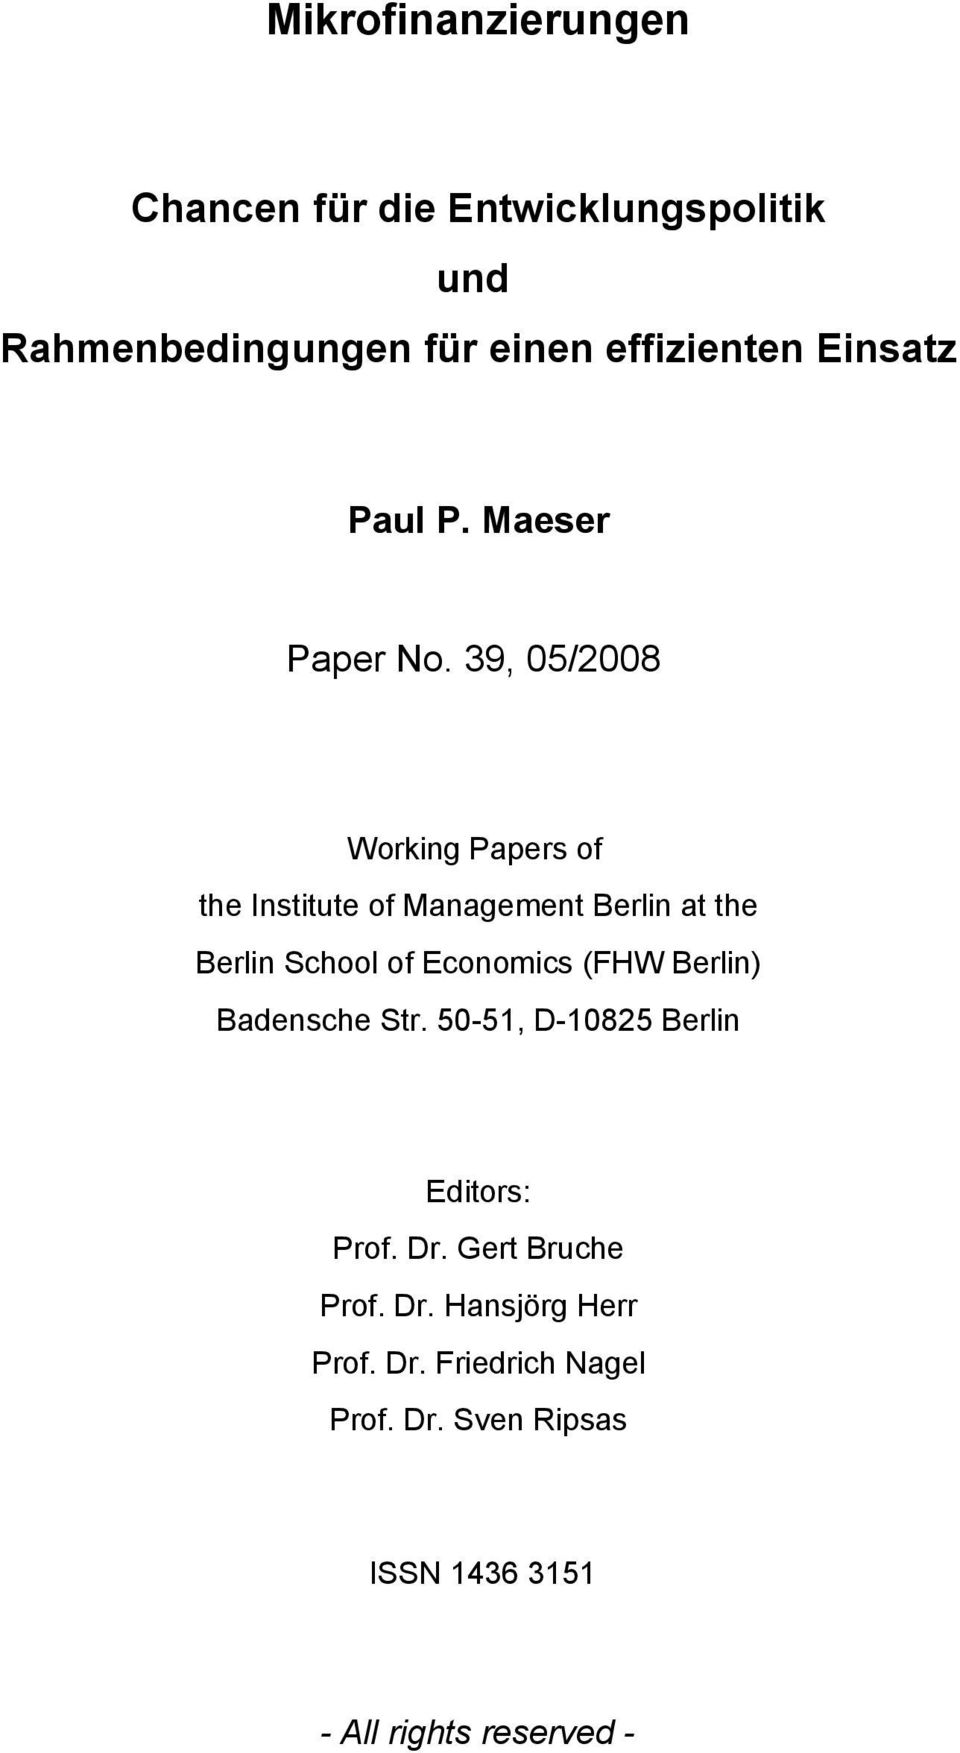 39, 05/2008 Working Papers of the Institute of Management Berlin at the Berlin School of Economics (FHW